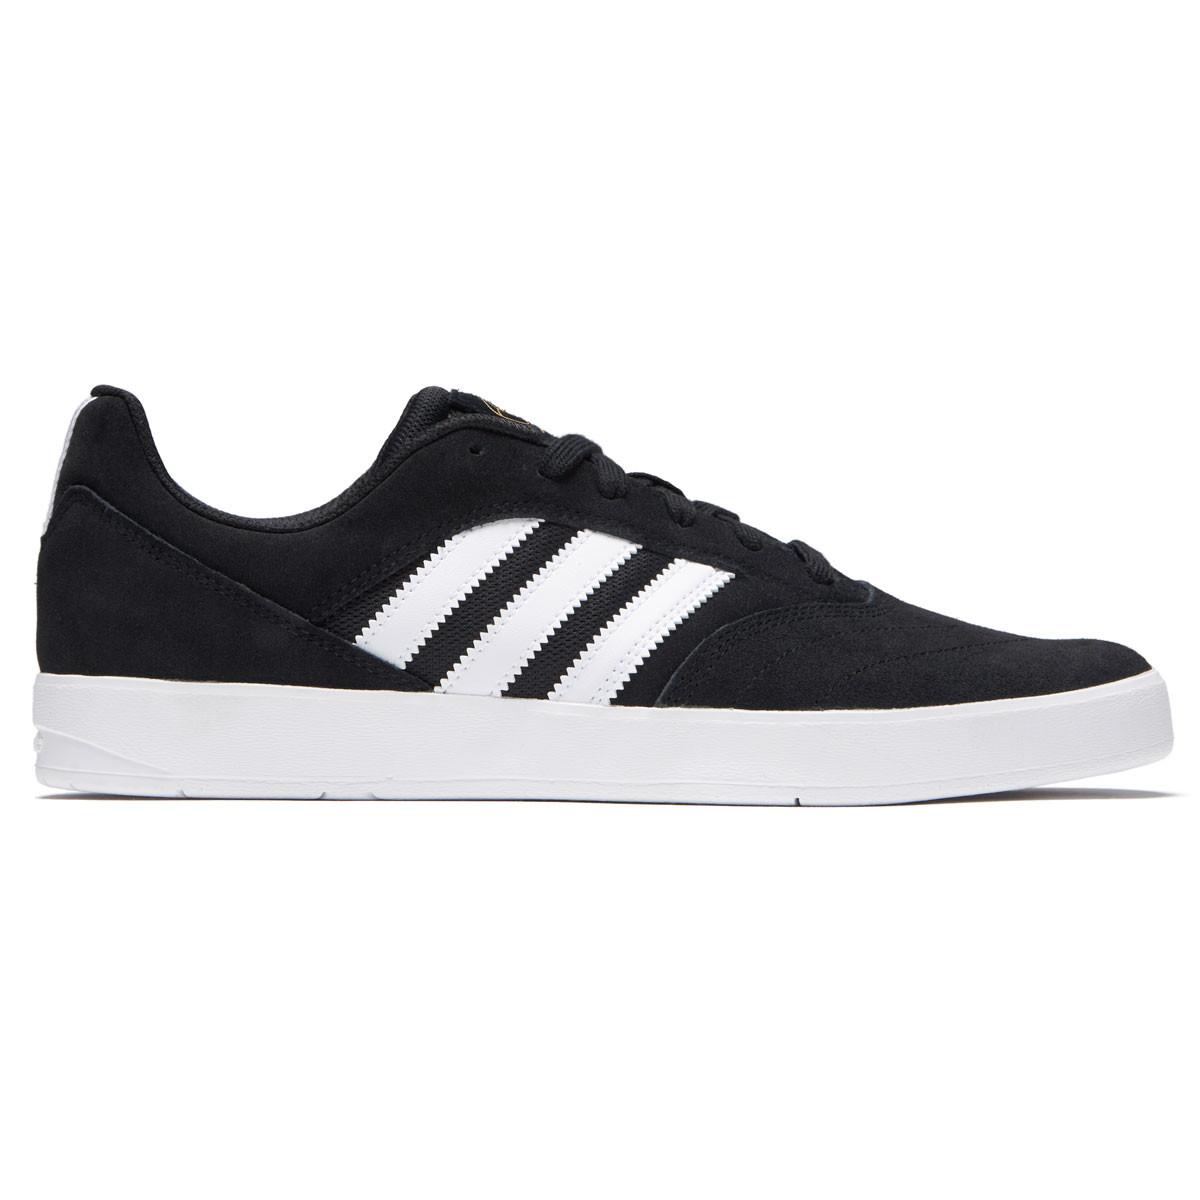 04ac0027bdb Adidas Suciu Adv II Shoes - Core Black White Gold Metalic